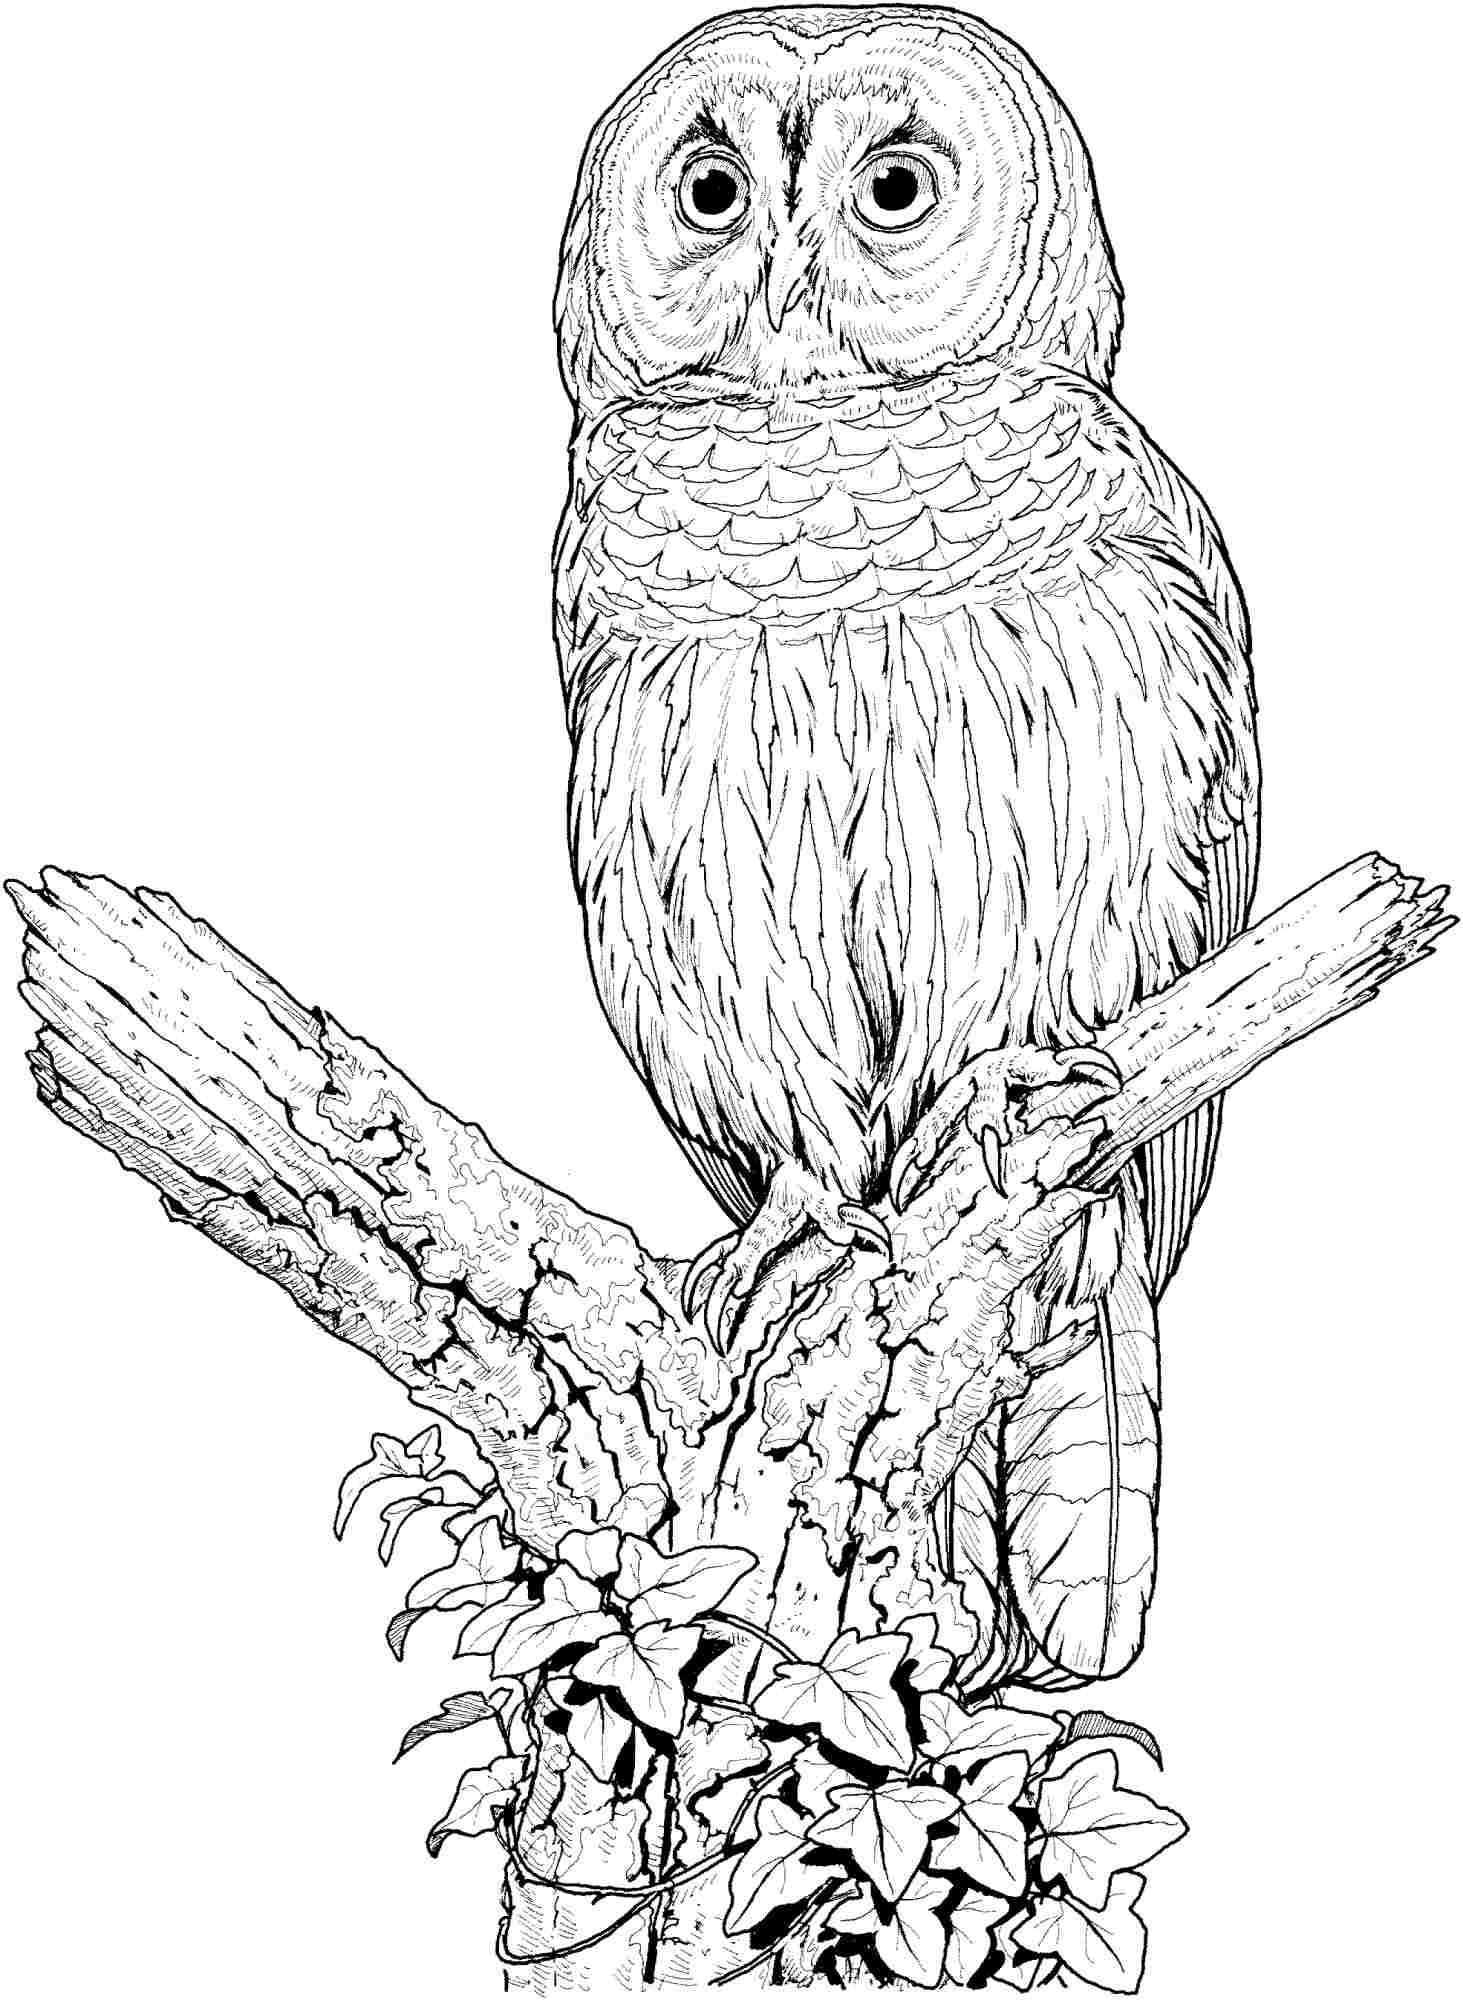 owls coloring pages preschool | Colouring Sheets Animal Owl Free Printable For Preschool ...